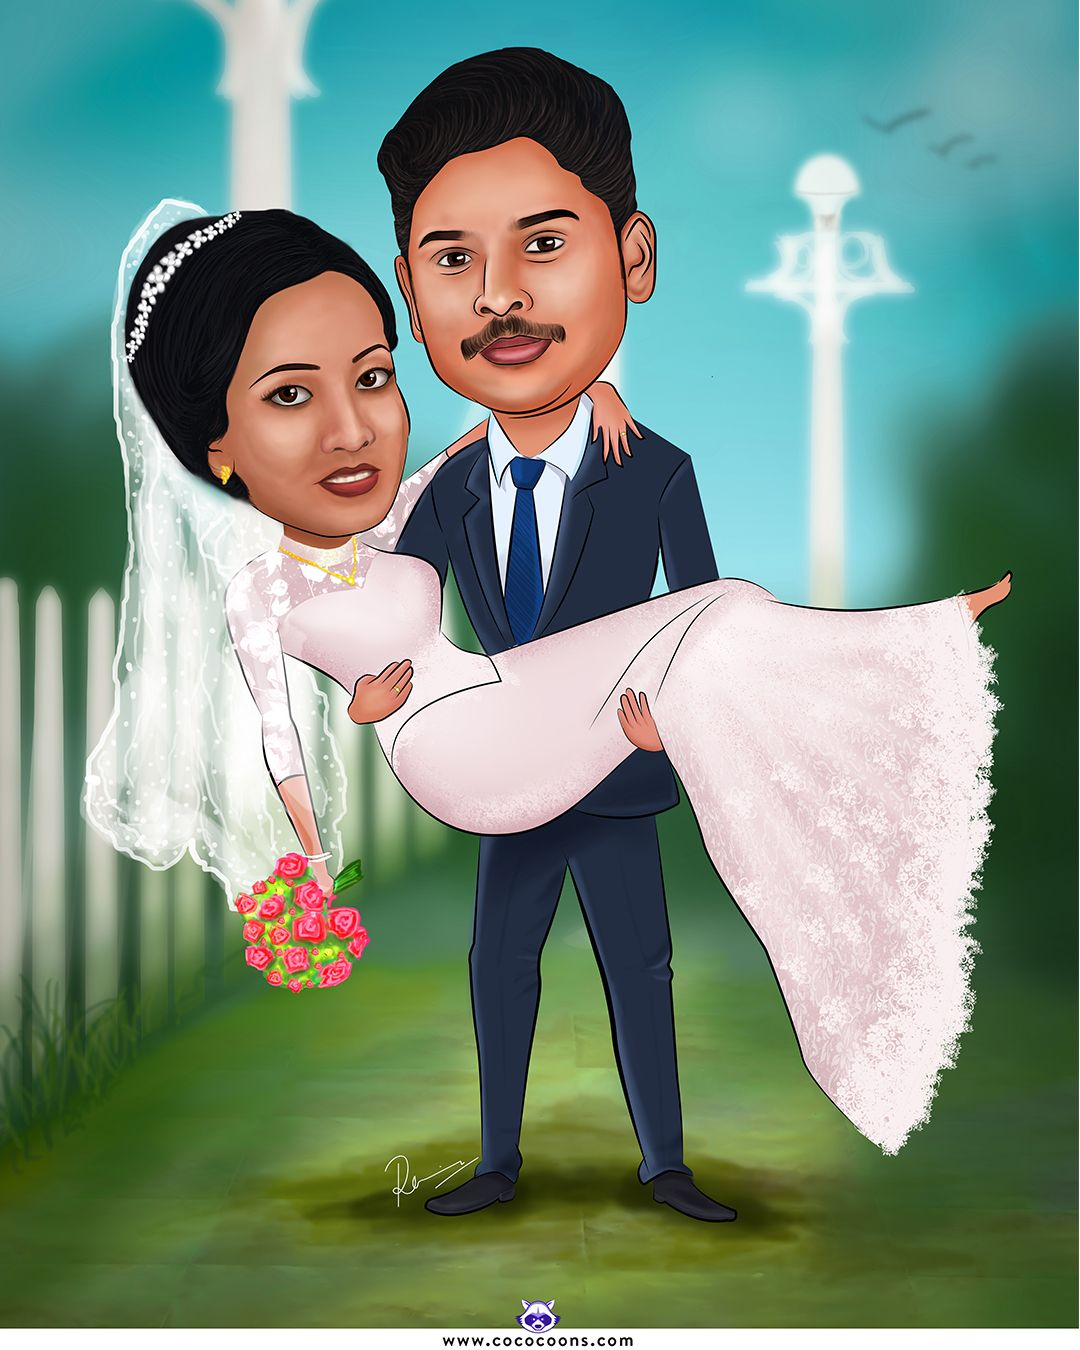 christian wedding caricature, Custom Caricatures